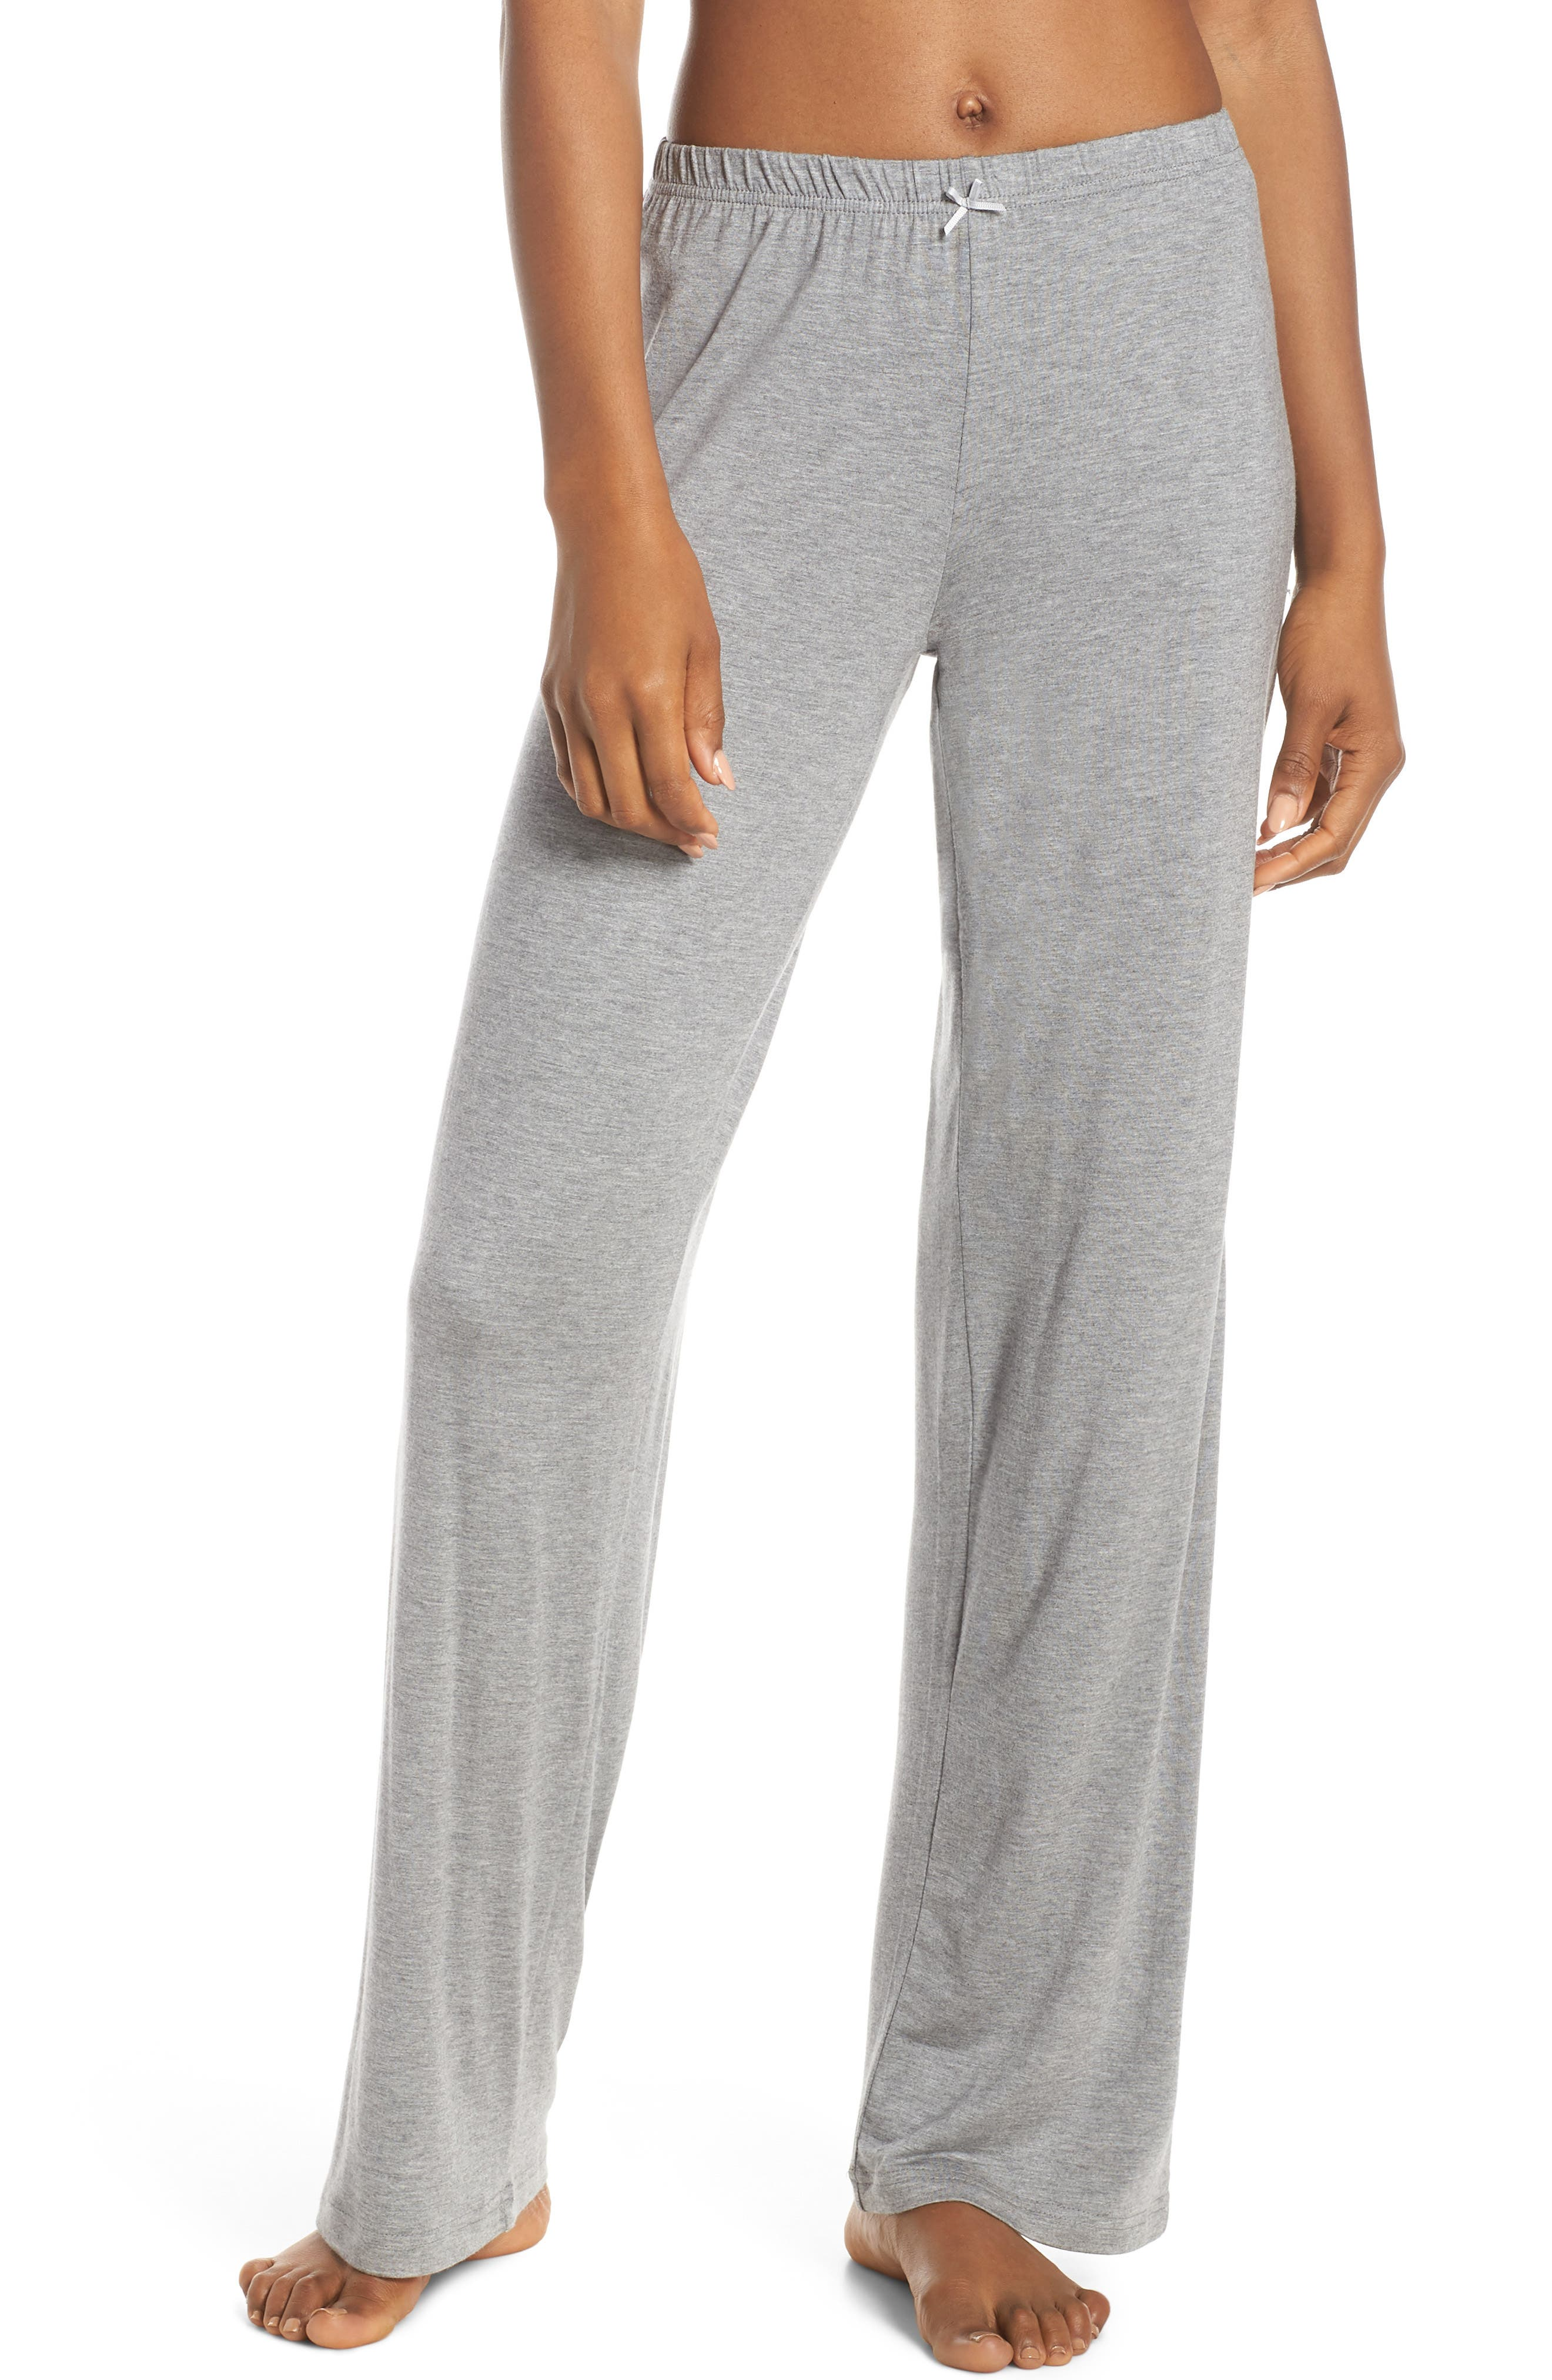 Papinelle Pajama Pants, Grey